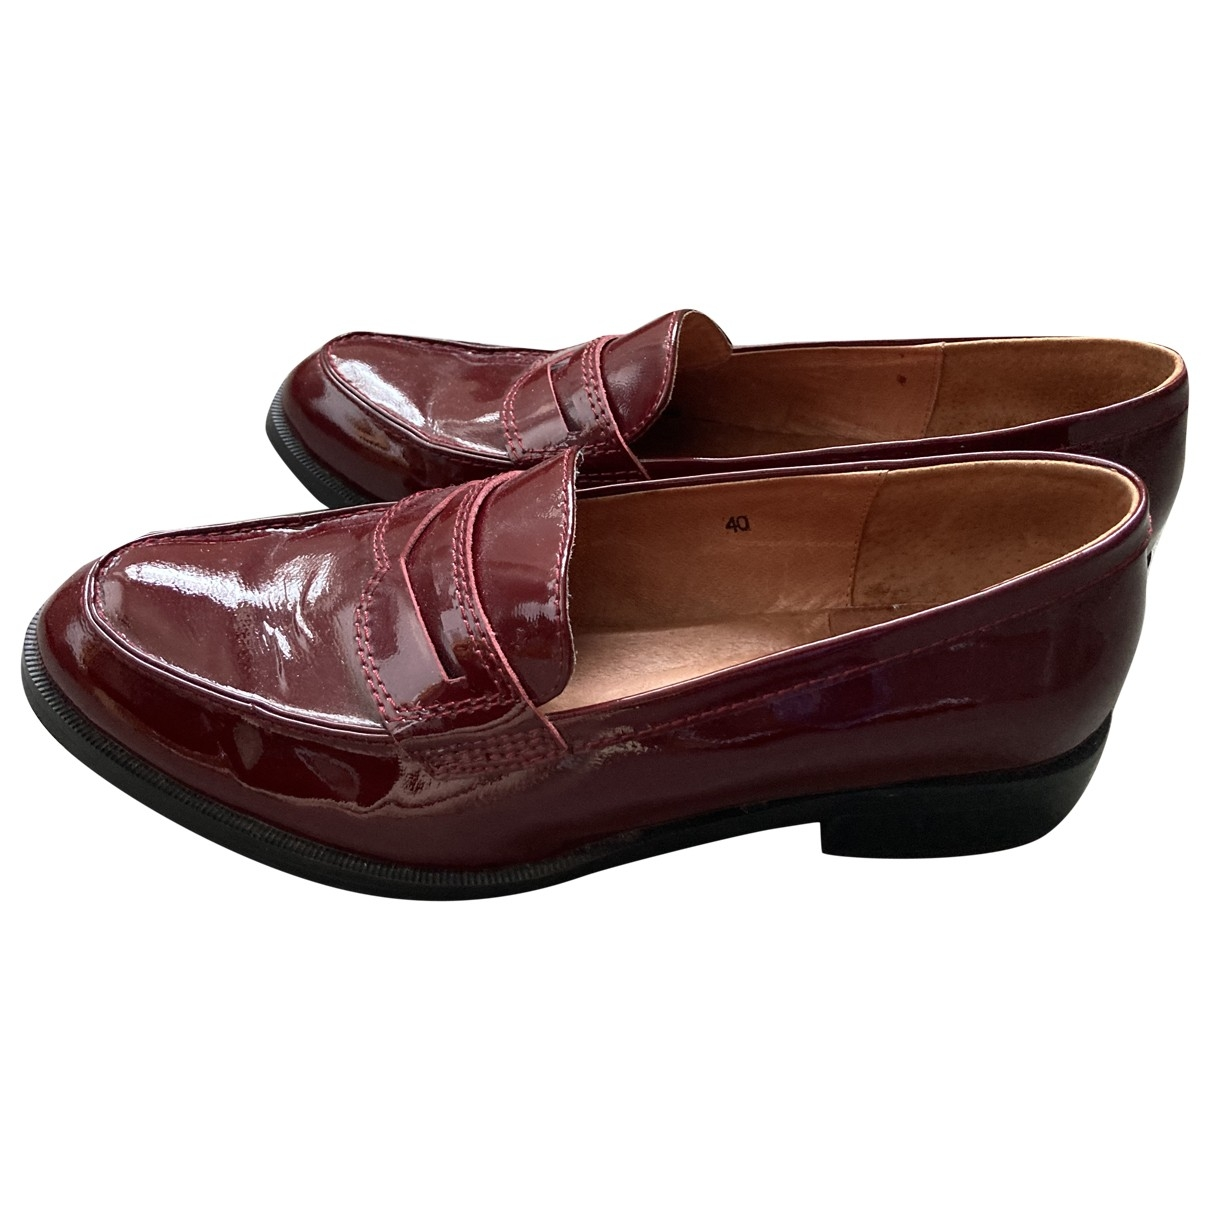 Office London \N Burgundy Patent leather Flats for Women 40 EU